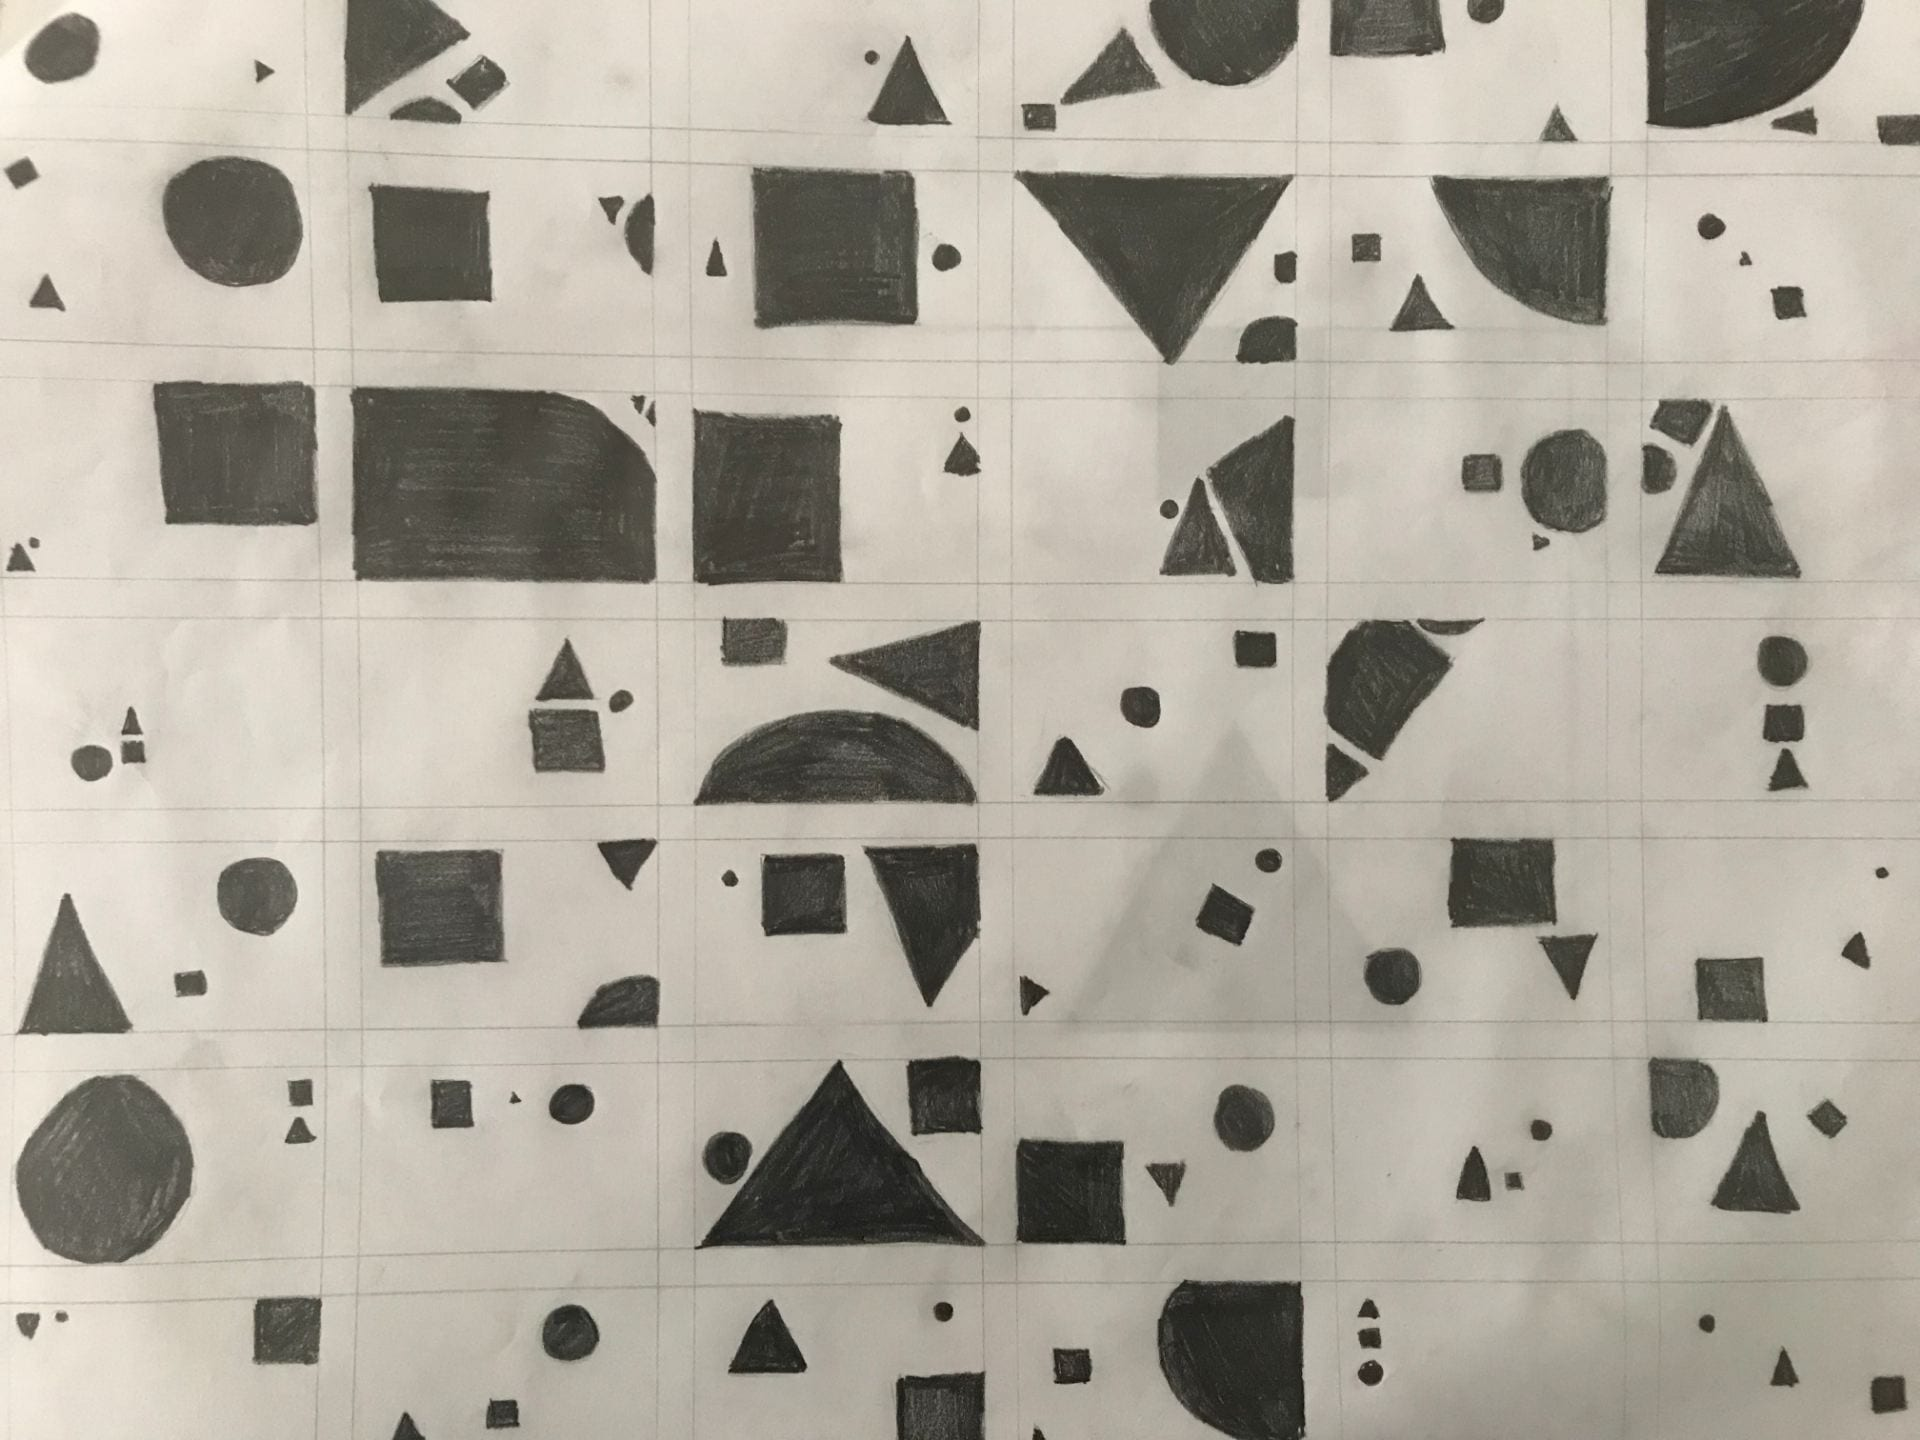 Thumbnail Exploration and Layout (Square, Triangle, Circle)